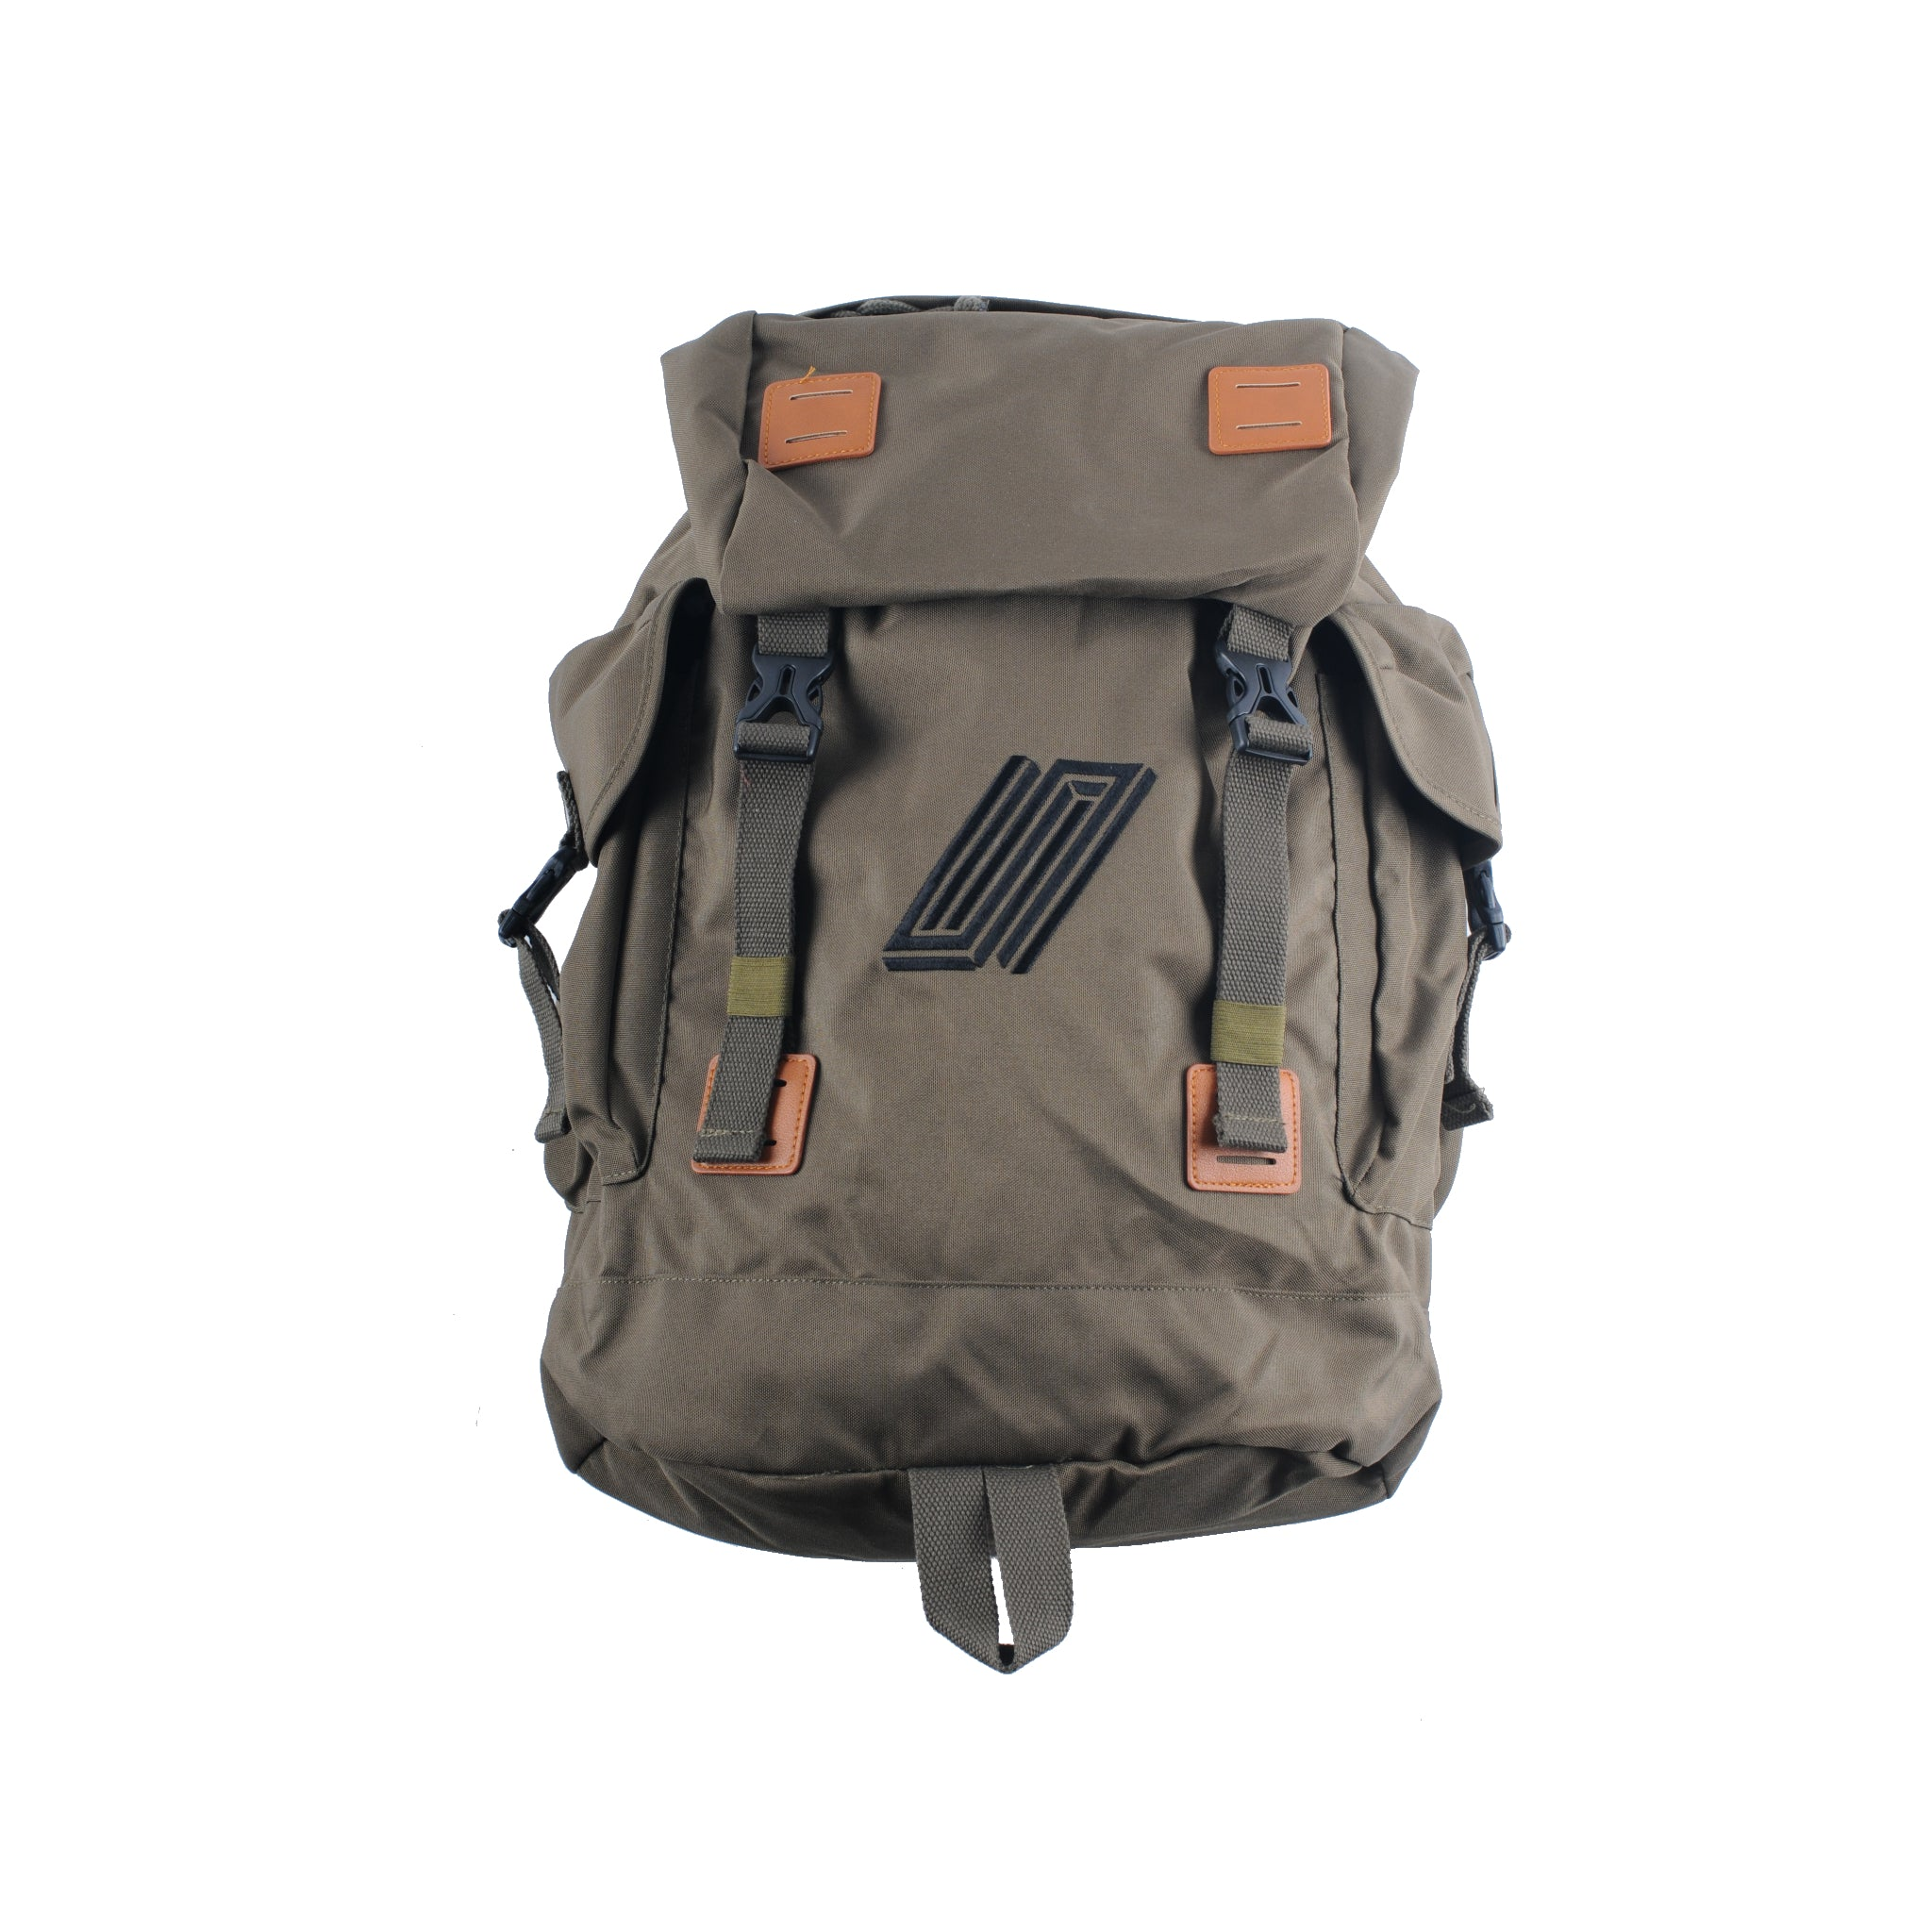 United Explorer Backpack Army Green/Tan